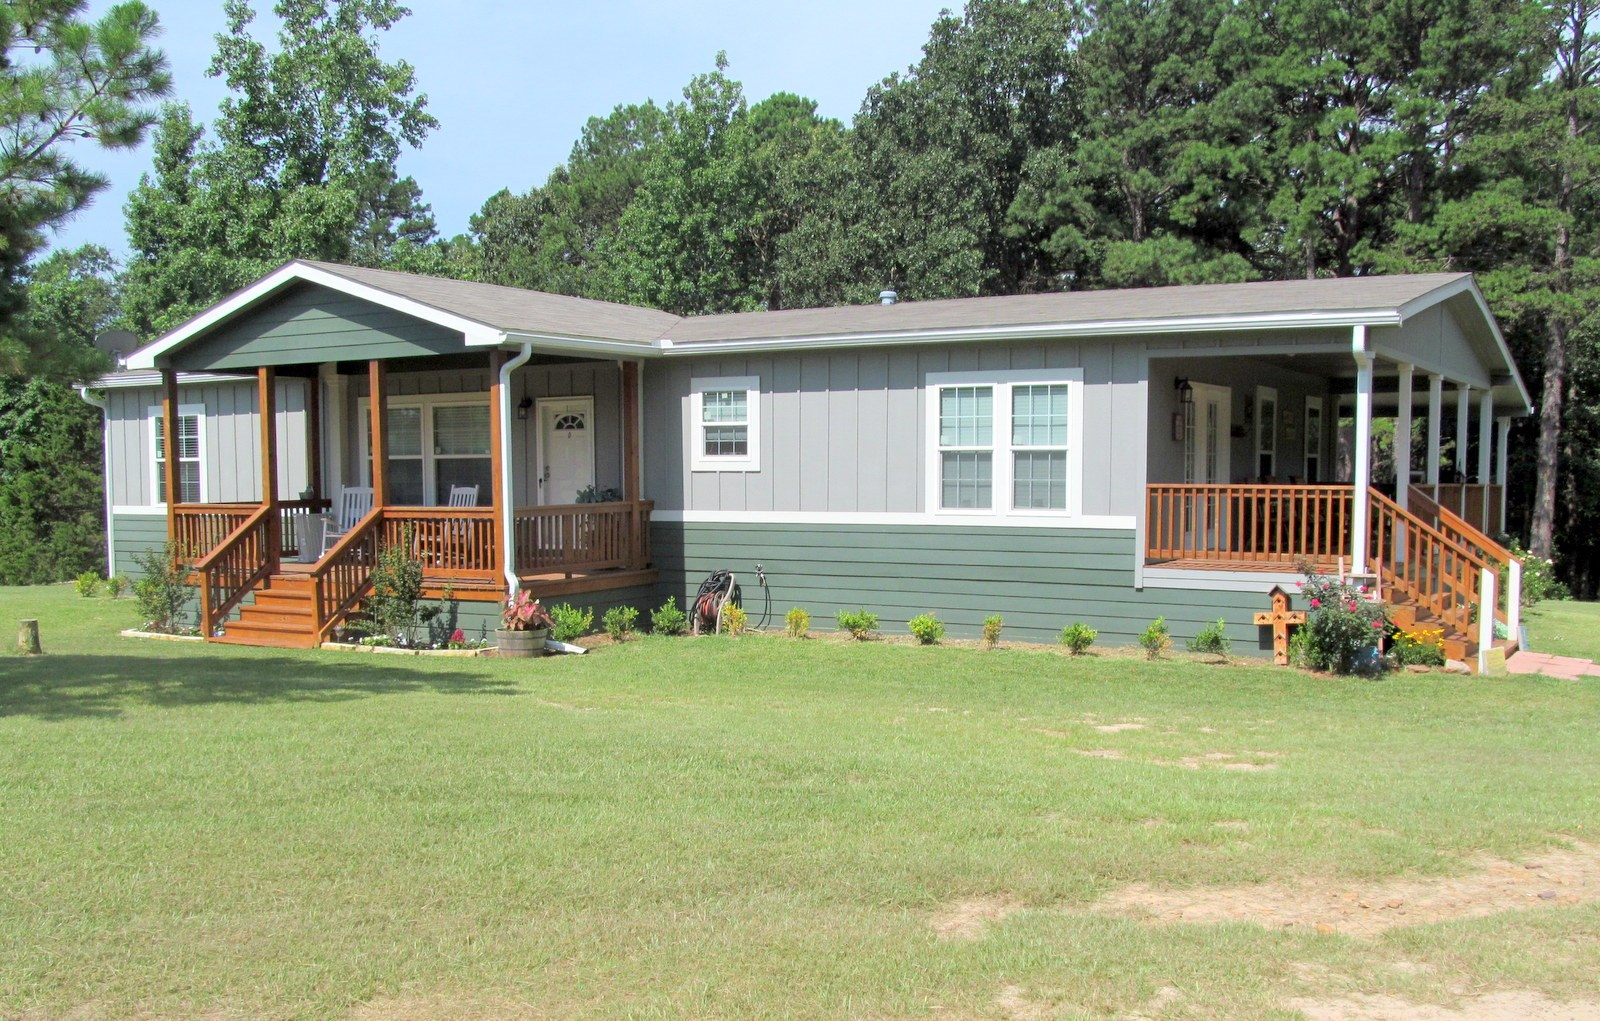 EAST TEXAS HOMESTEAD ON 24.5 ACRES - 3/2 HOME + 1/1 CABIN